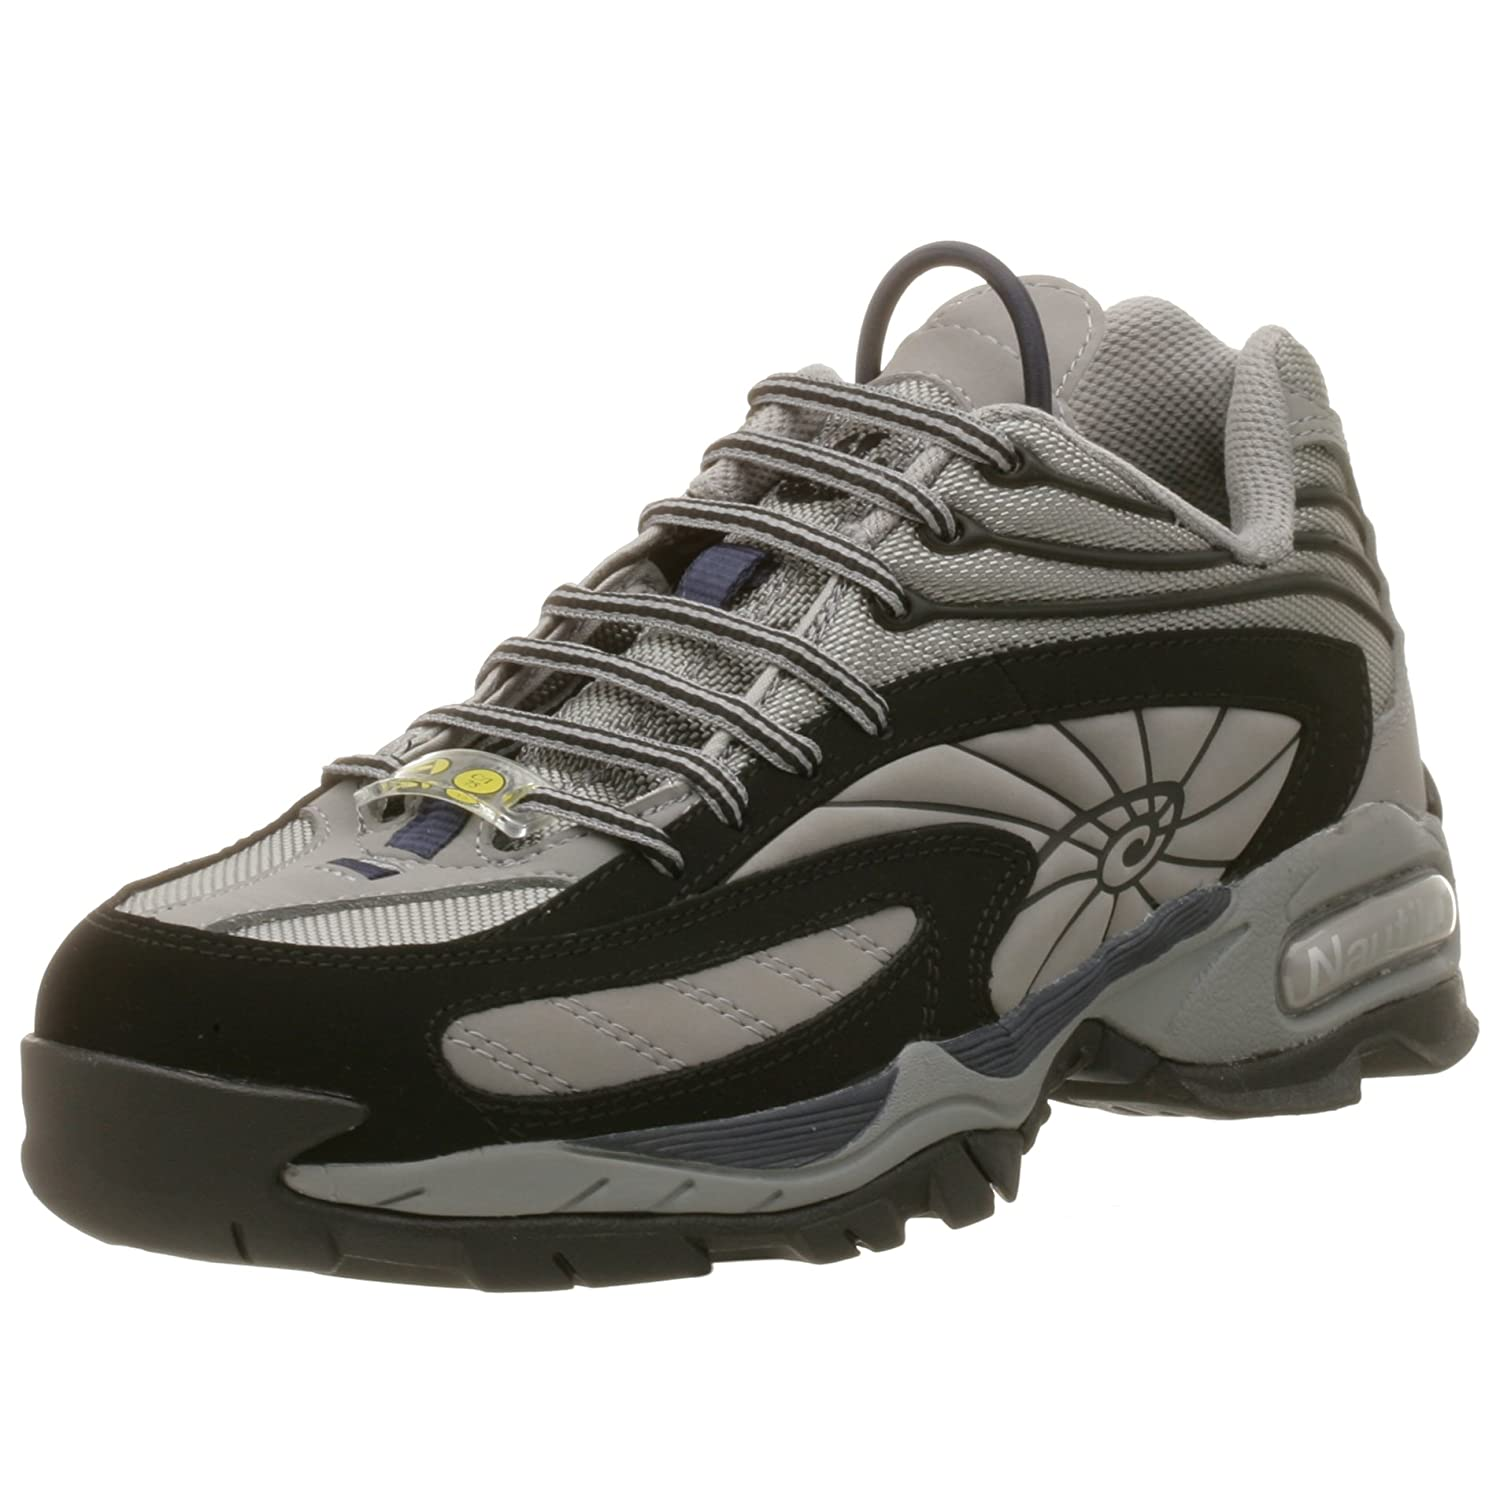 Nautilus 1320 ESD no ExposedメタルSafety Toe Athletic Shoe B000IX4QJA 11 XXW|グレー グレー 11 XXW